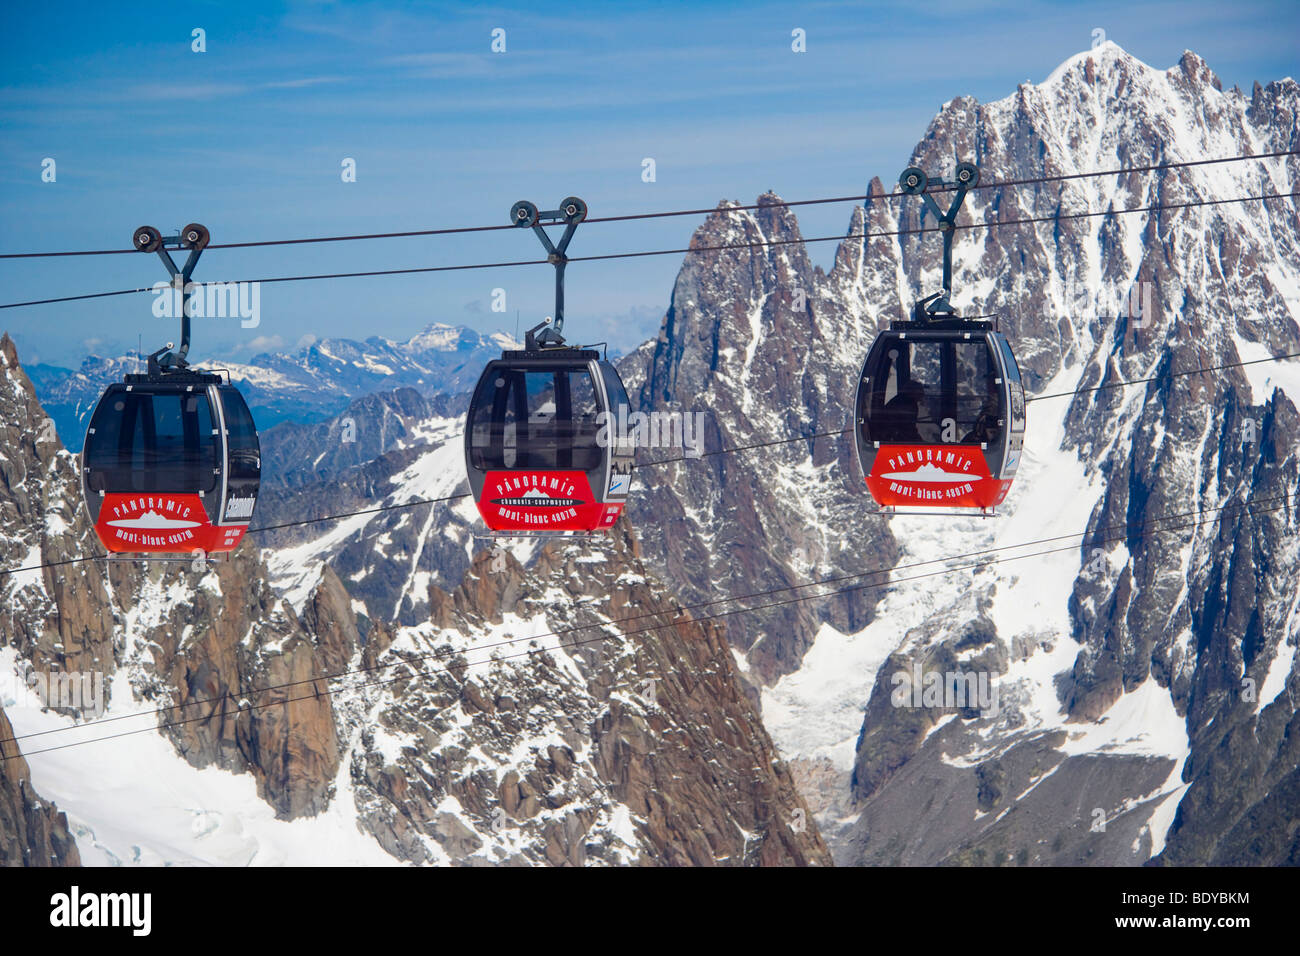 Cable car between Aiguille du Midi and Punta Helbronner, Funivie Monte Bianco, Mont Blanc Funicular, Vallee Blanche - Stock Image